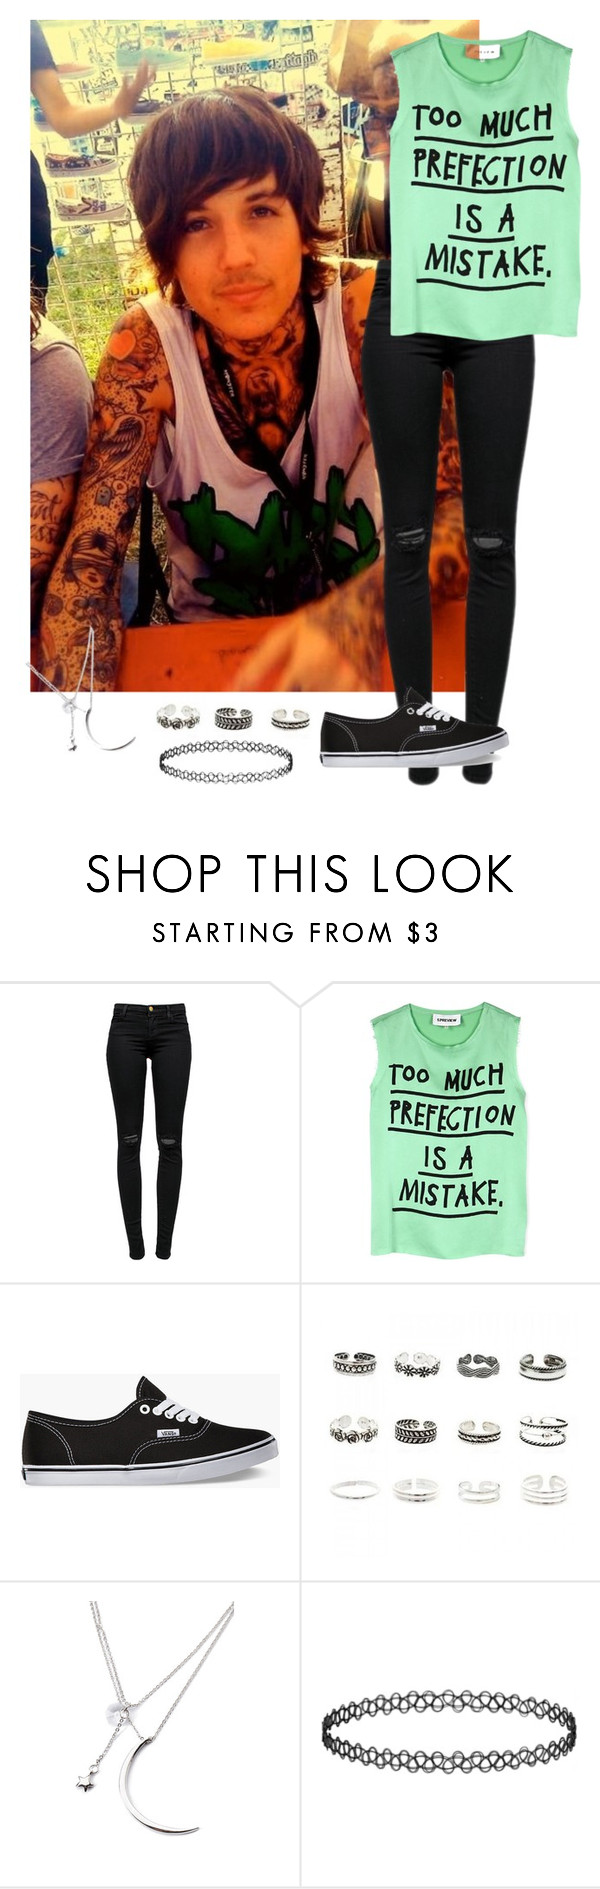 """Signing with Oliver"" by sp0ngebob ❤ liked on Polyvore featuring Sykes, J Brand, 5 Preview, Vans, Retrò, Forever 21 and Topshop"